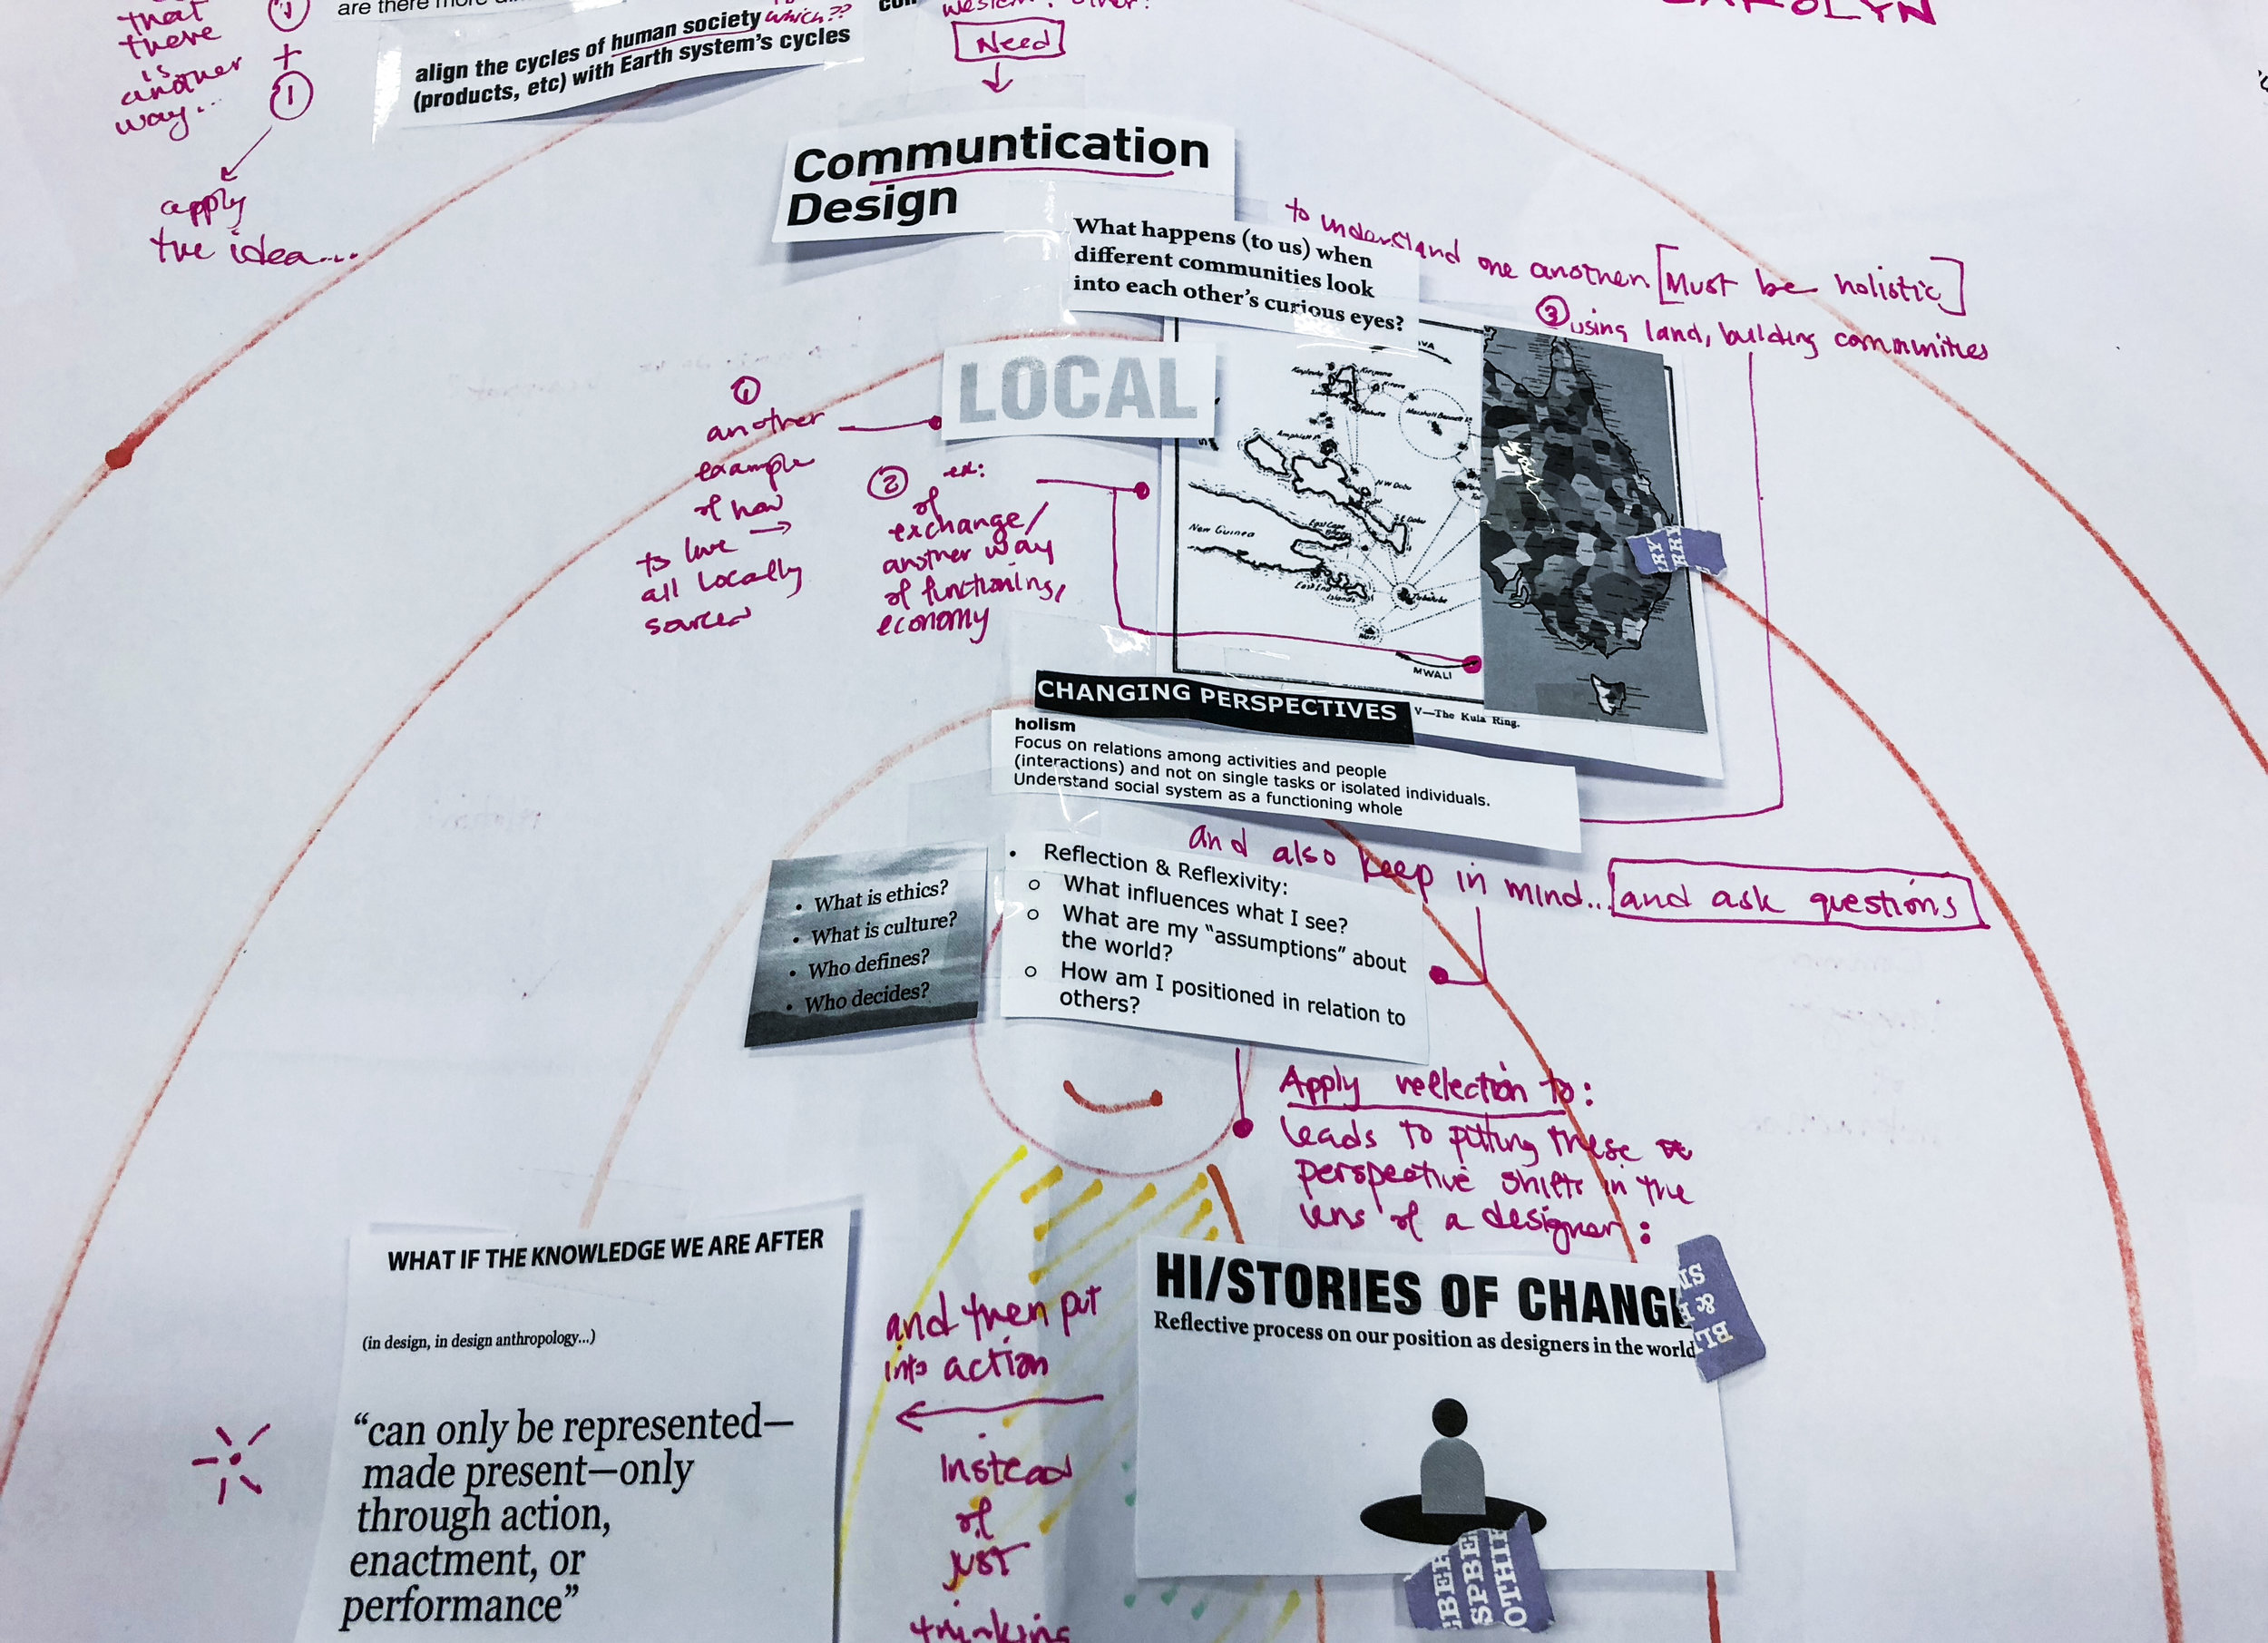 Mapping my own thought process, values, and perspectives on design